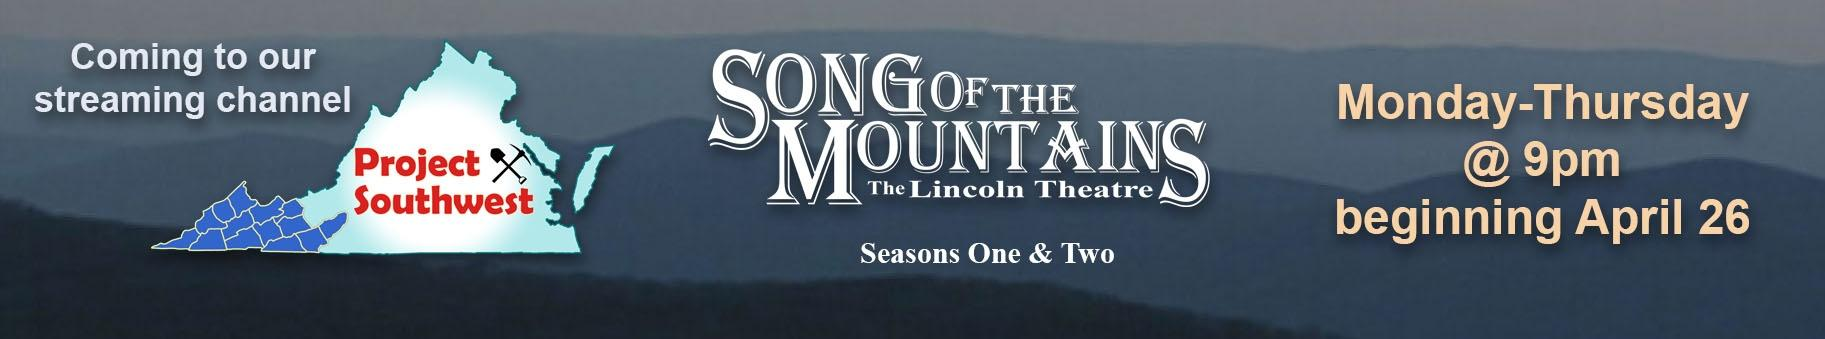 Song of the Mountains, Coming to Project SW